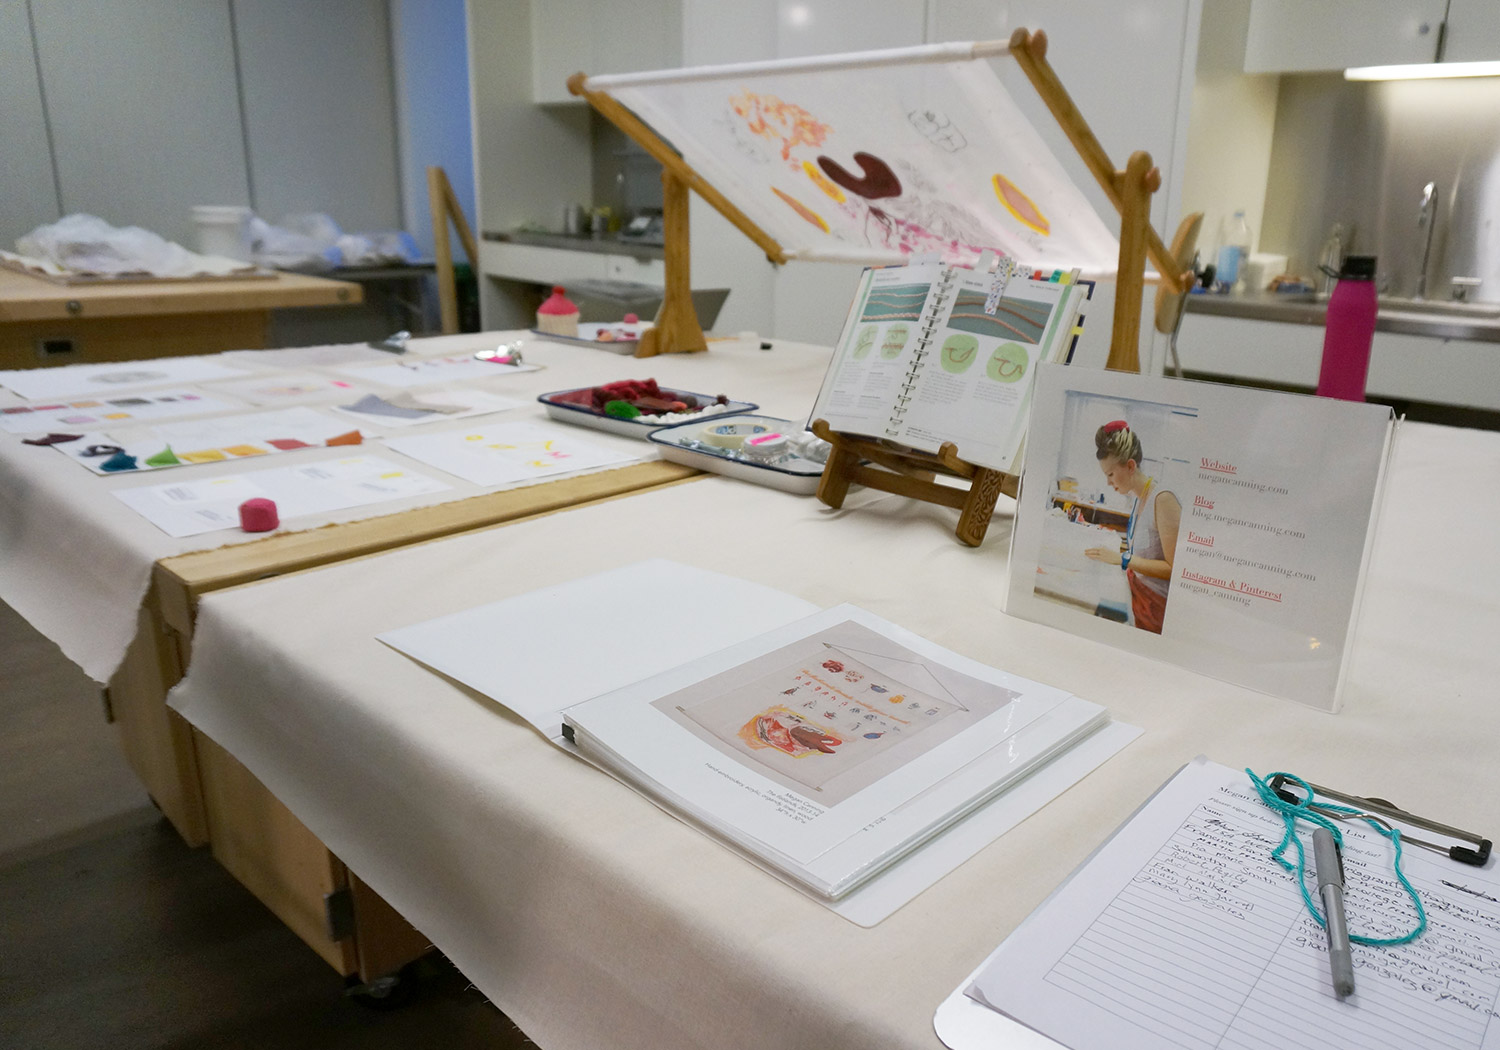 A typical visitor's view of the studio table